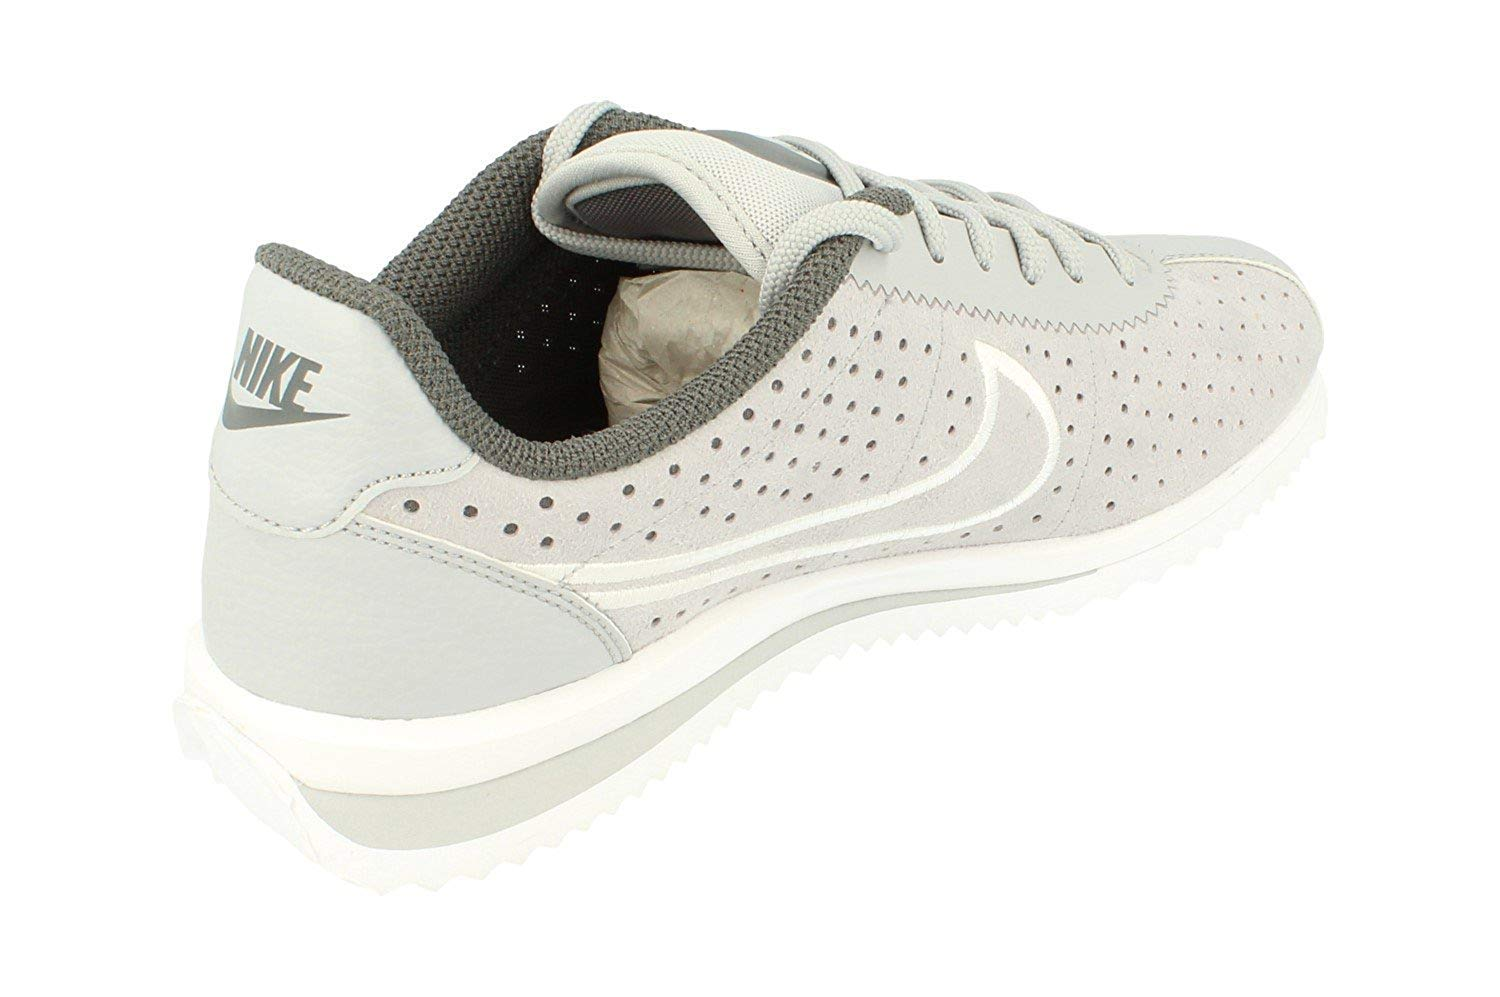 UK 6 US 6.5 EU 39, Wolf Grey White 002 Nike Cortez Ultra Moire 2 Mens Running Trainers 918207 Sneakers Shoes